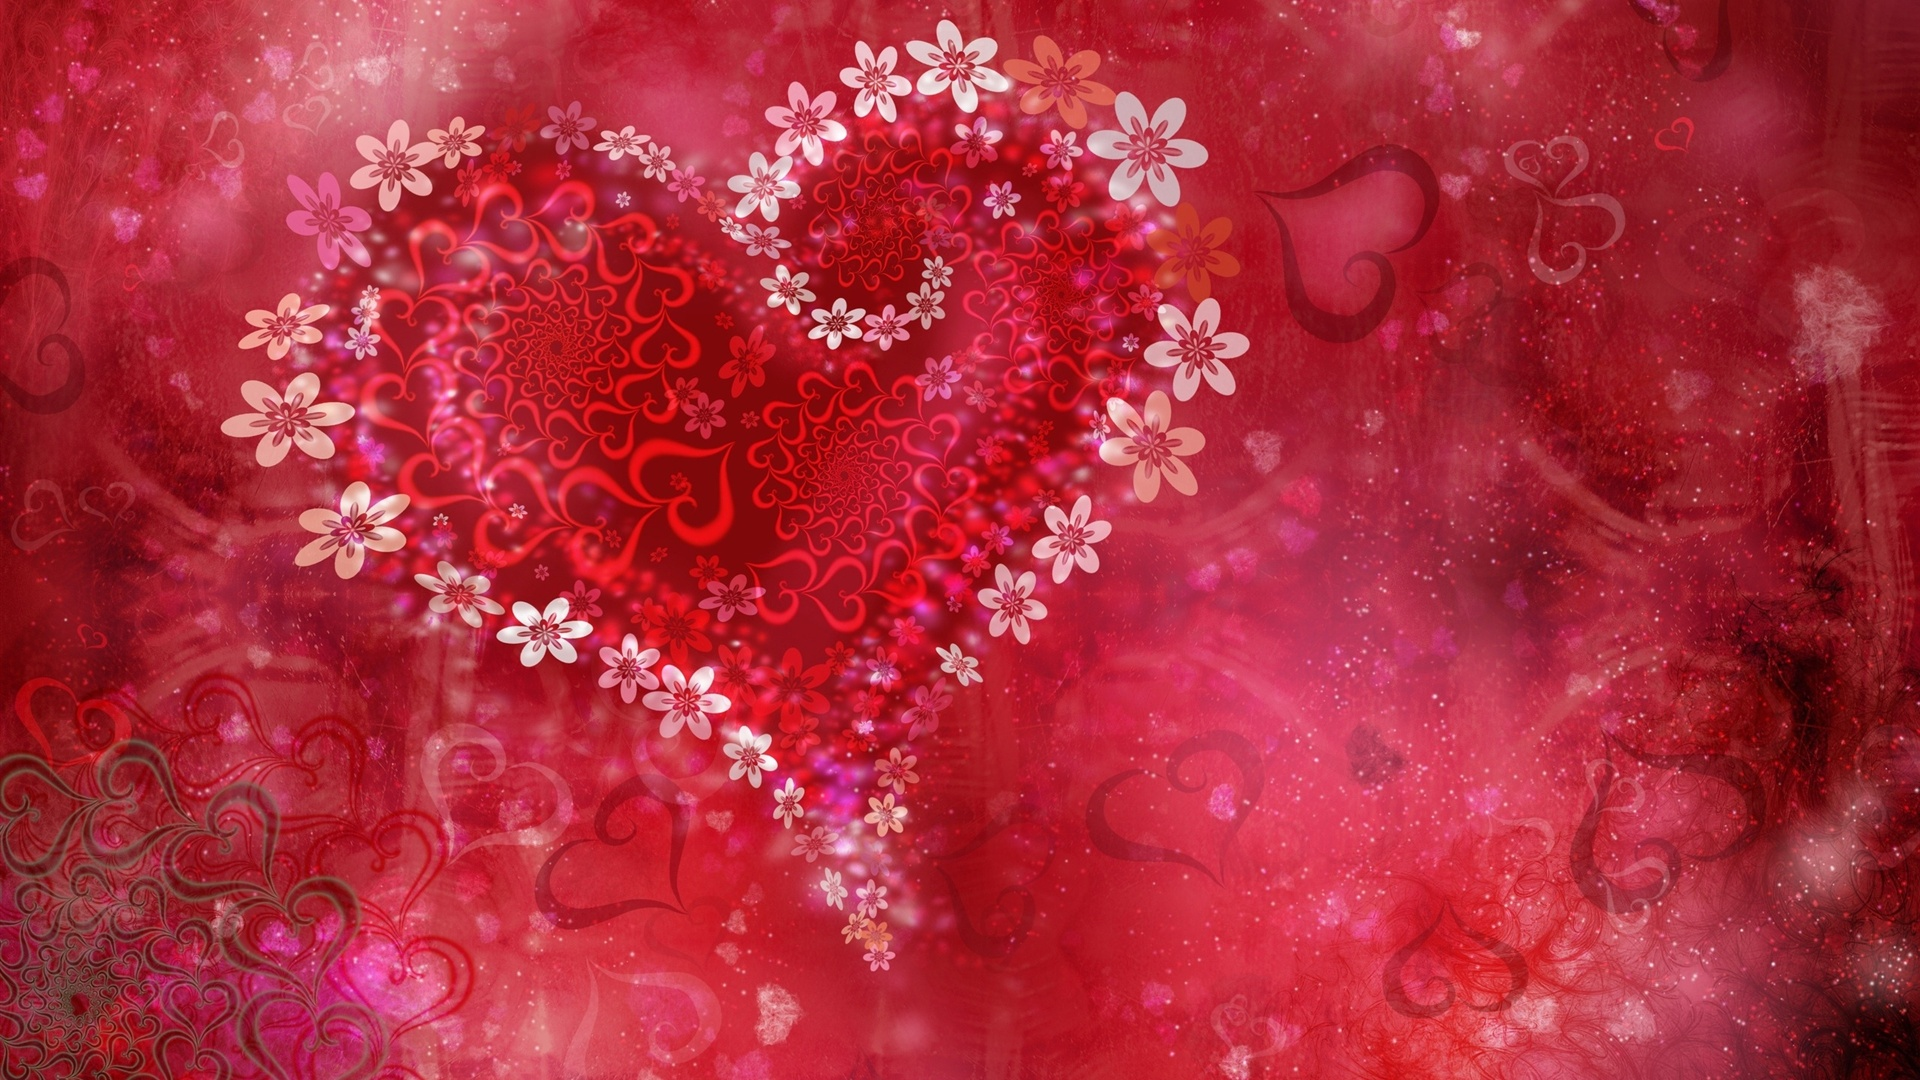 Download Wallpaper 1920x1080 Valentine s Day flowers of ...